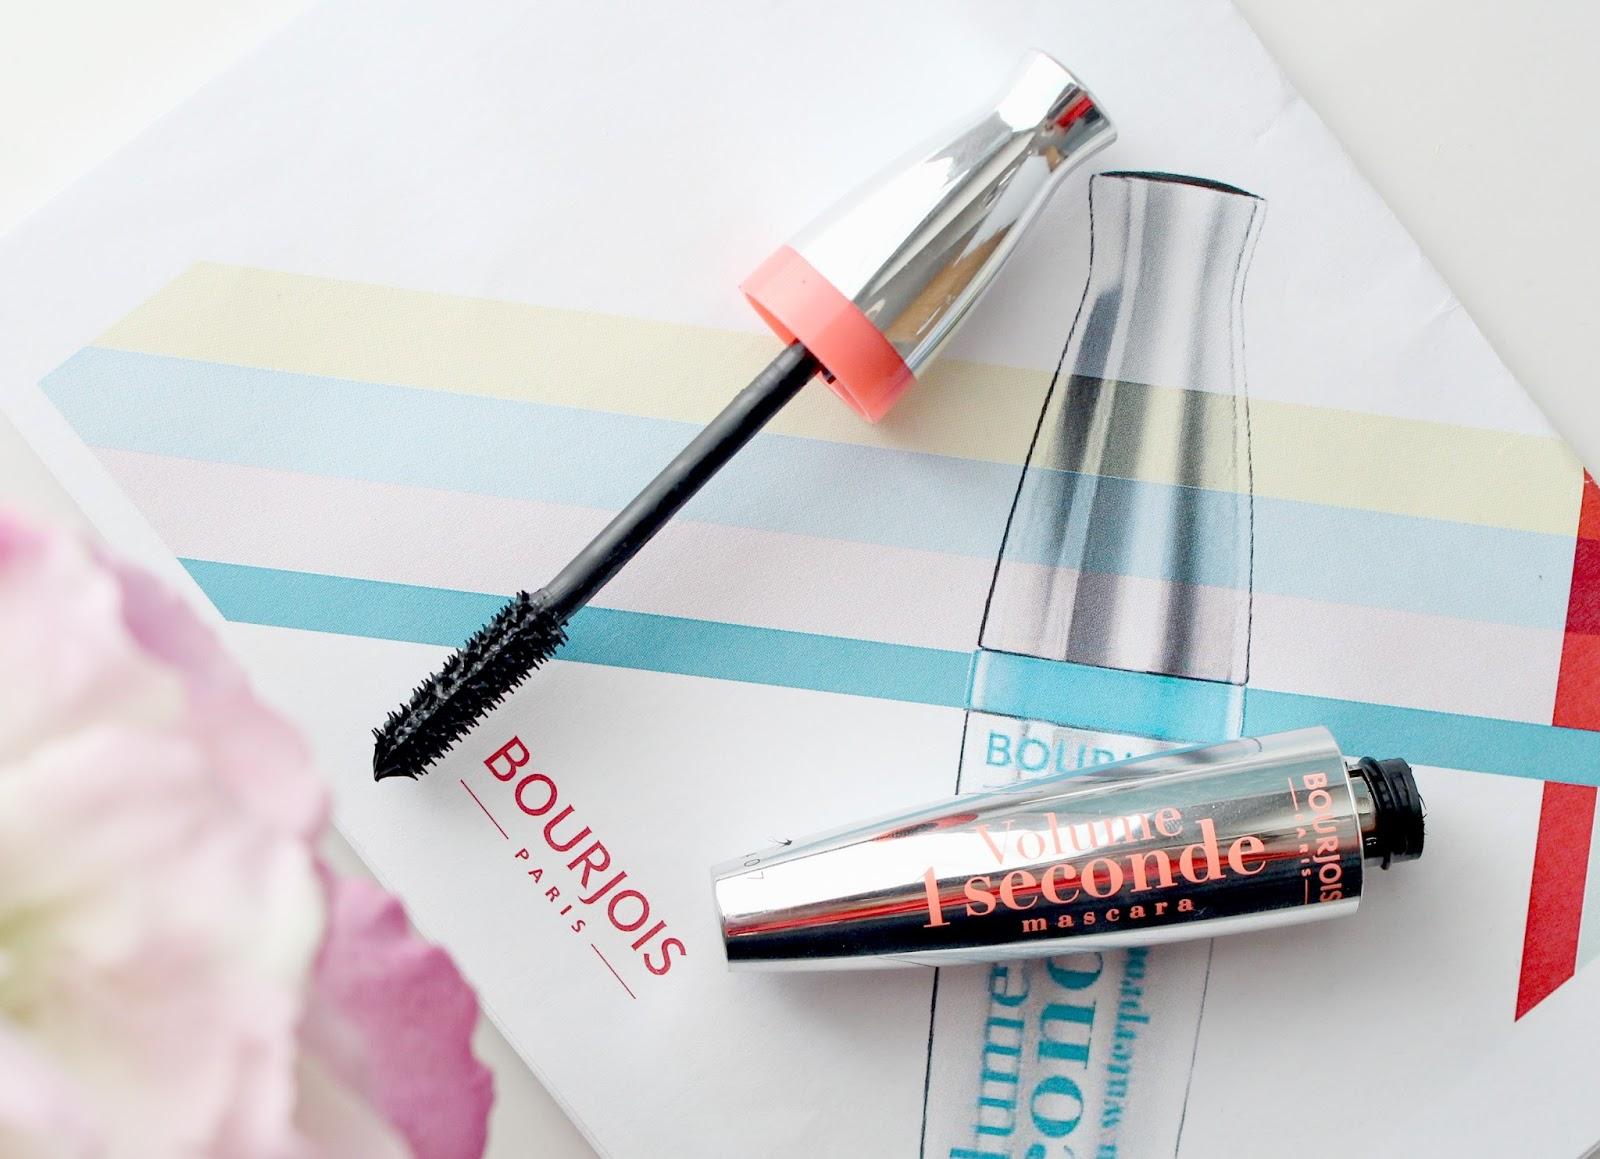 Bourjois Volume 1 Seconde Mascara, Bourjois Volume 1 Seconde Mascara Review, New Bourjois Mascara